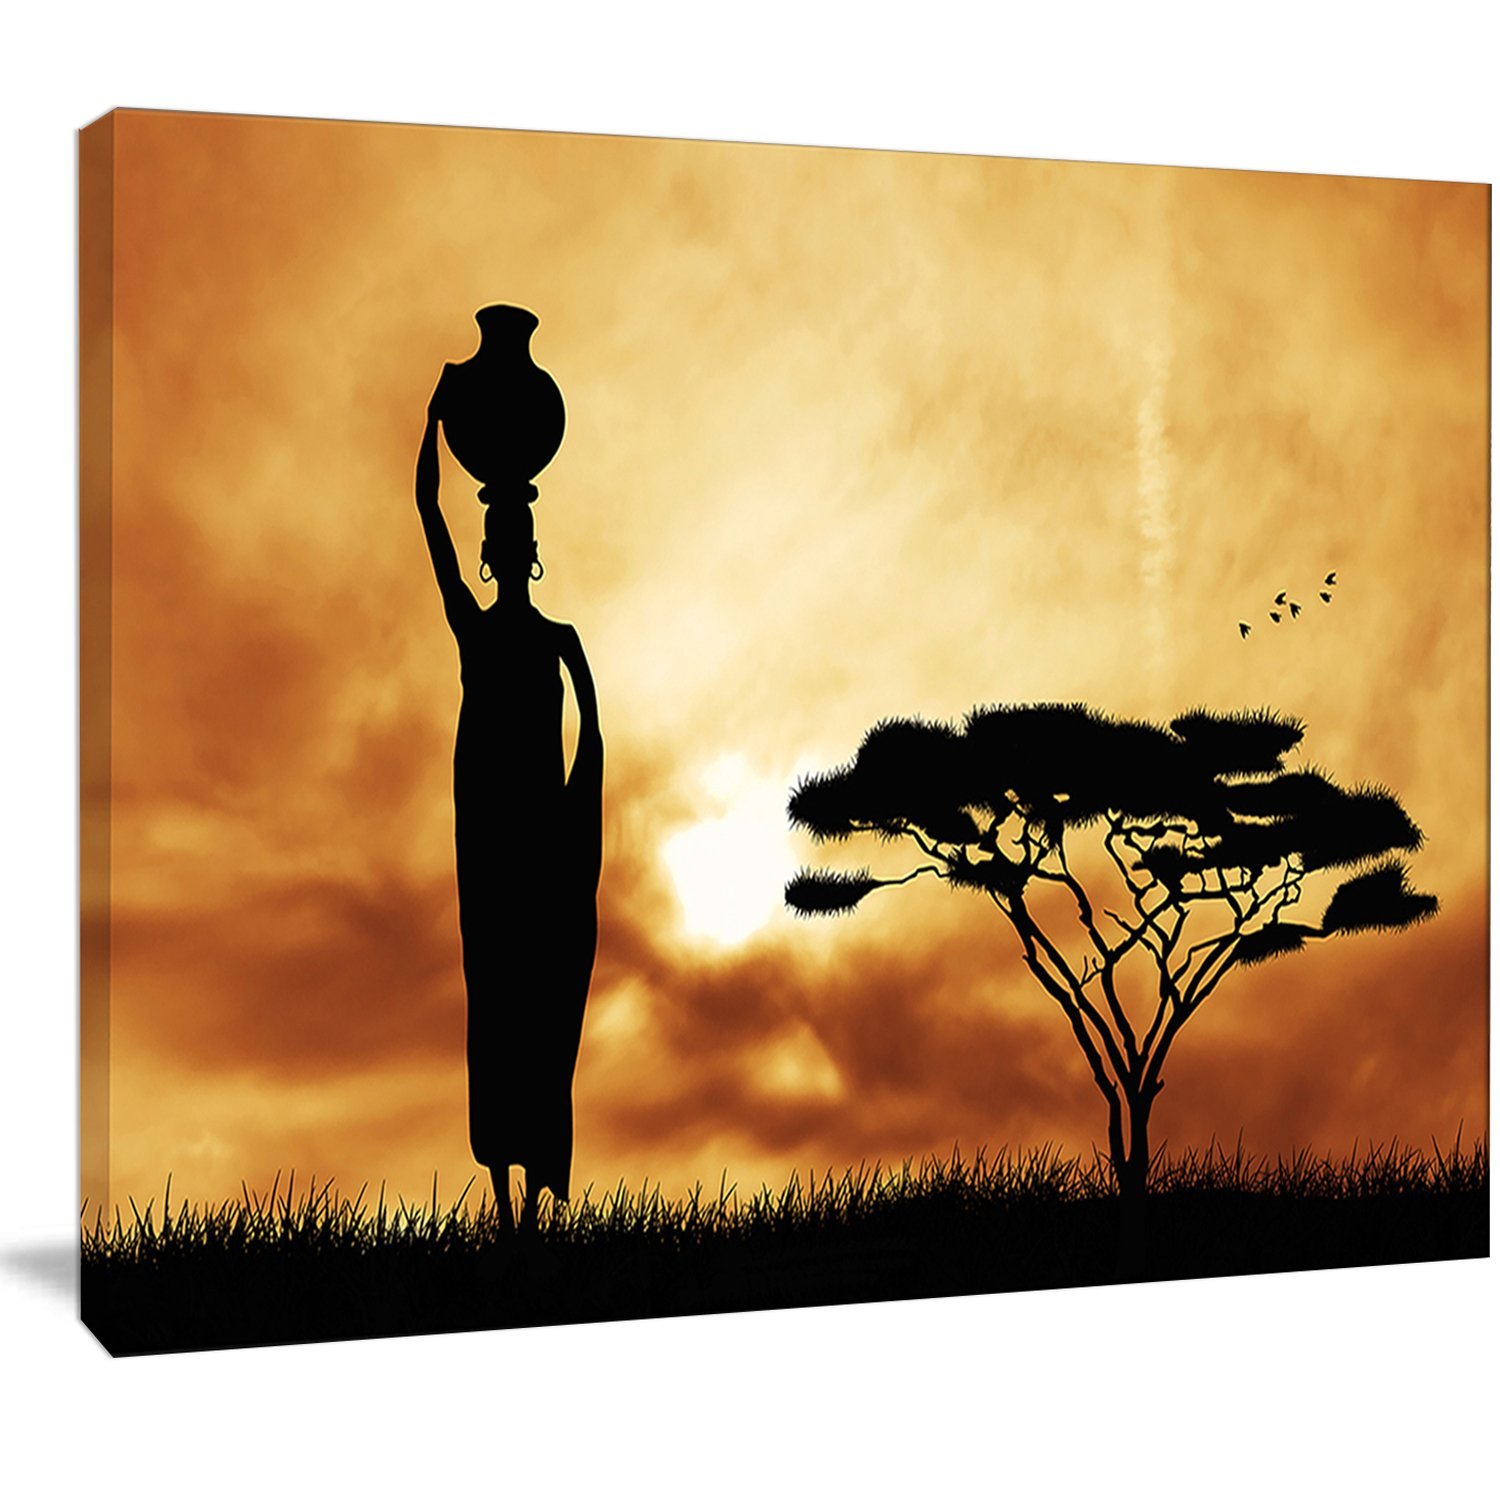 Amazon.com: Design Art PT12979-20-12 African Woman & Lonely Tree ...